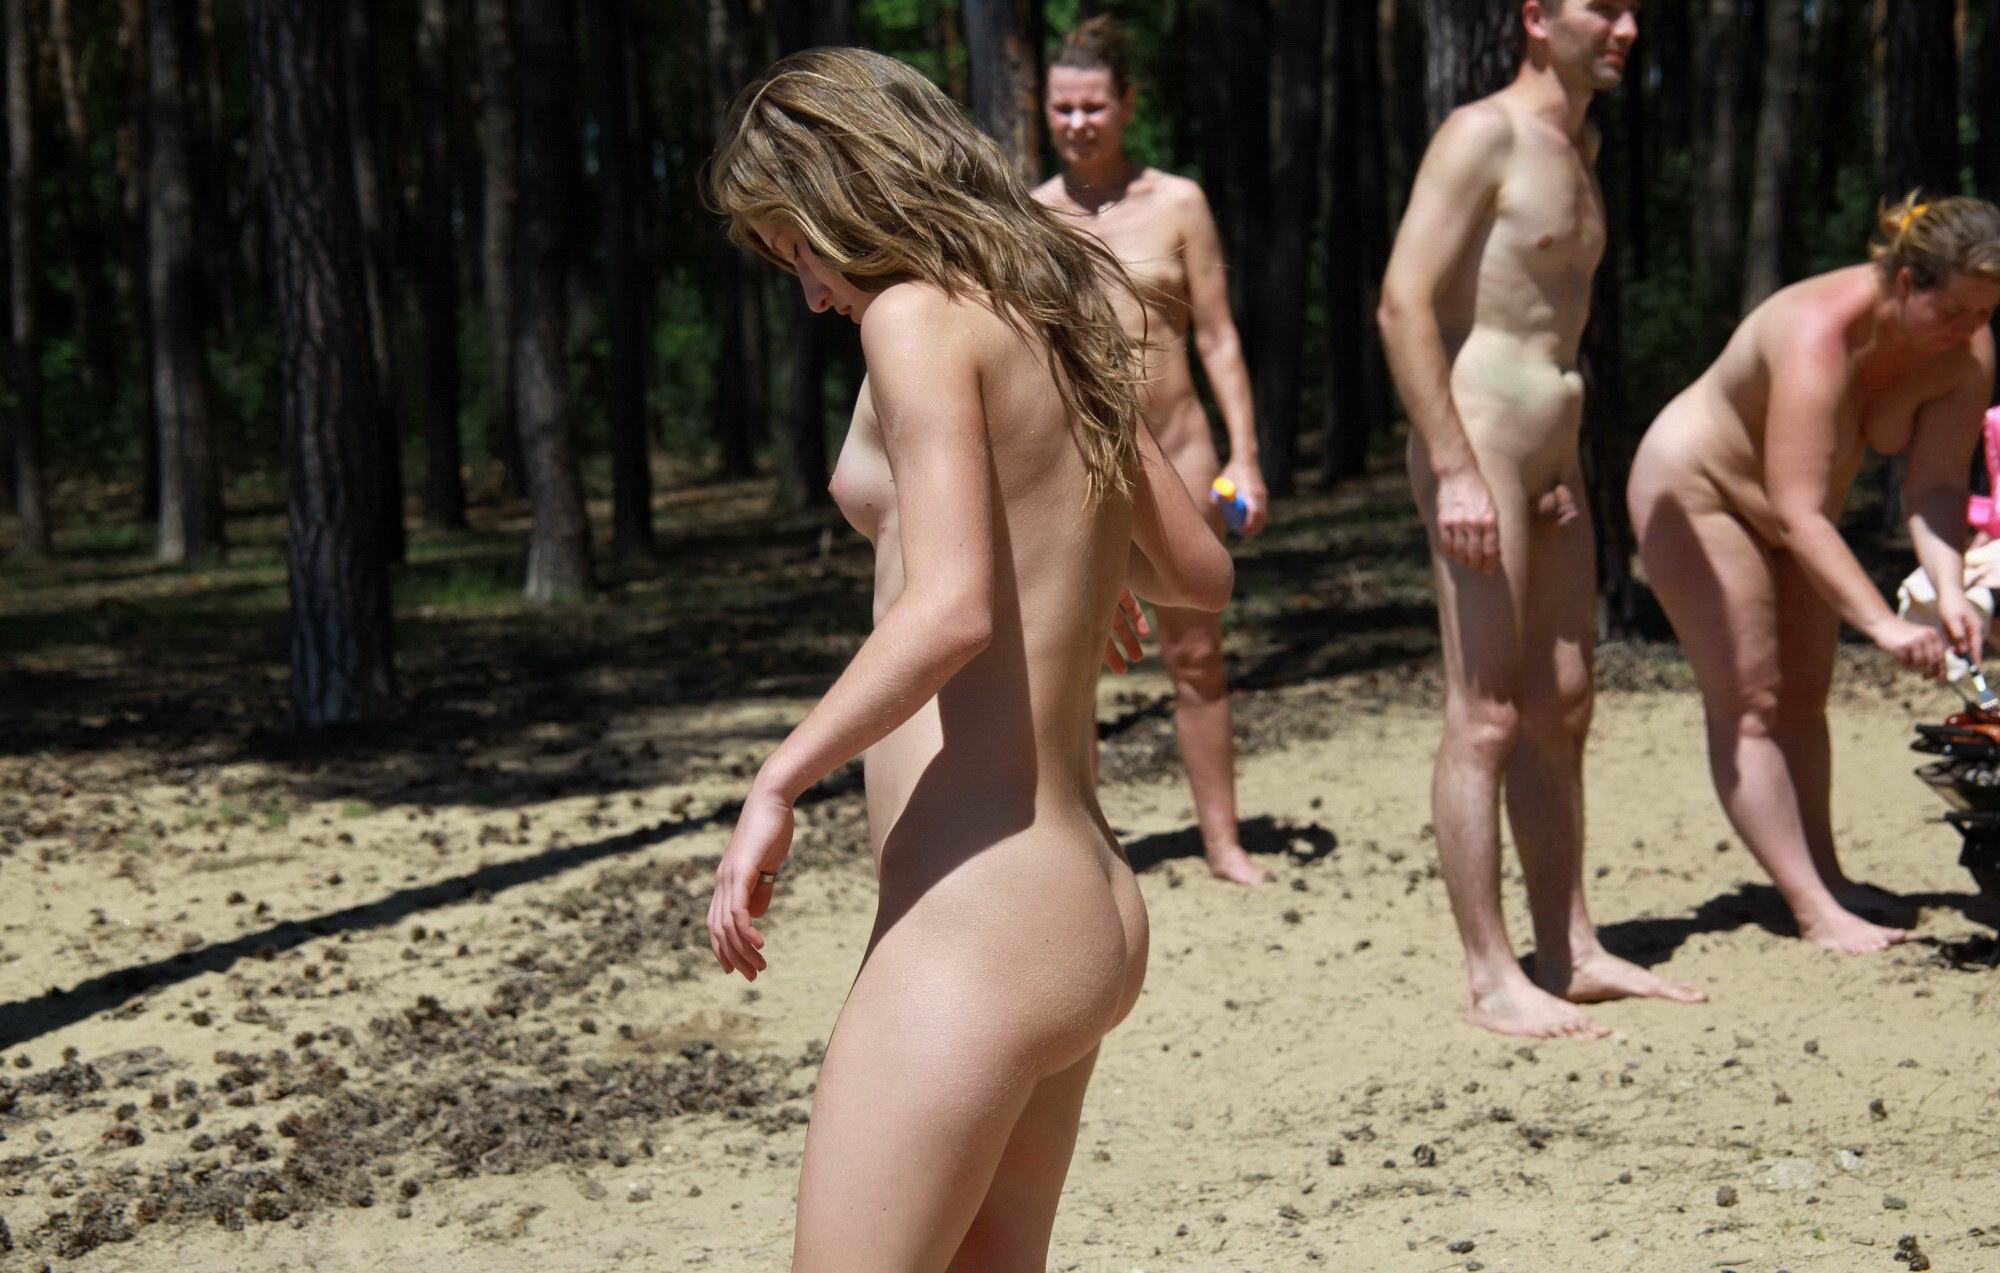 Voyeur pageant naturist are